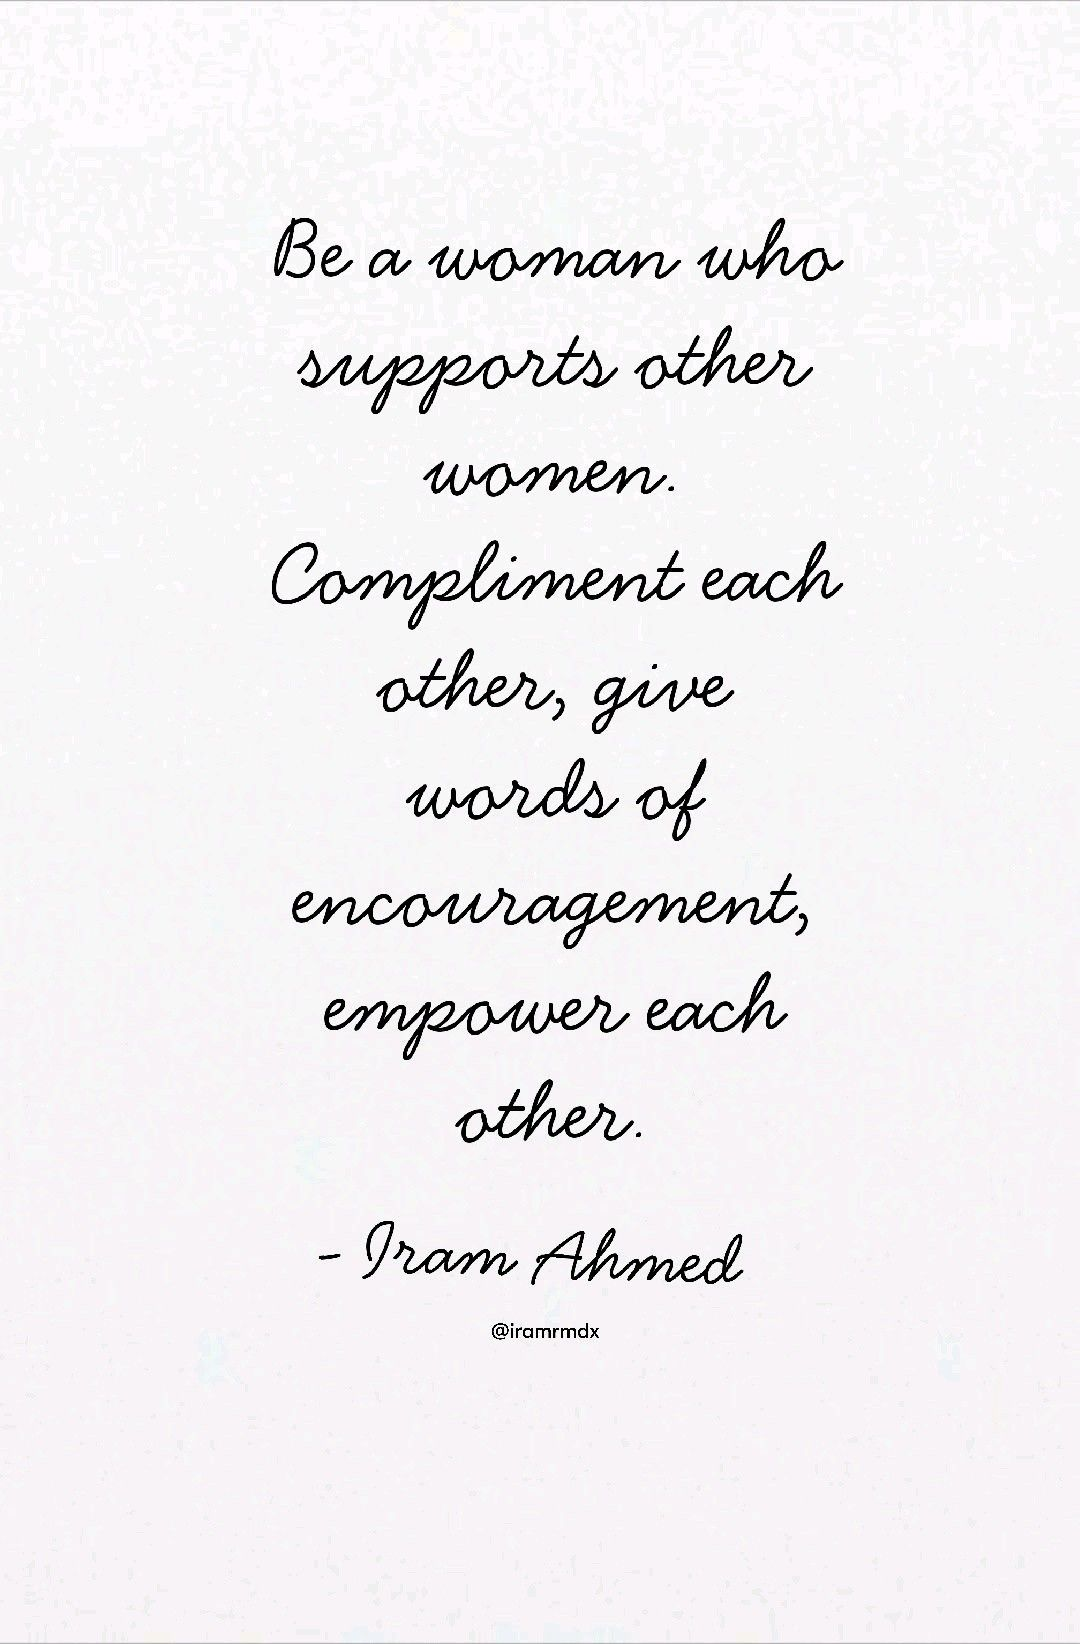 Women Empowerment Other Woman Quotes Empowering Women Quotes Empowerment Quotes